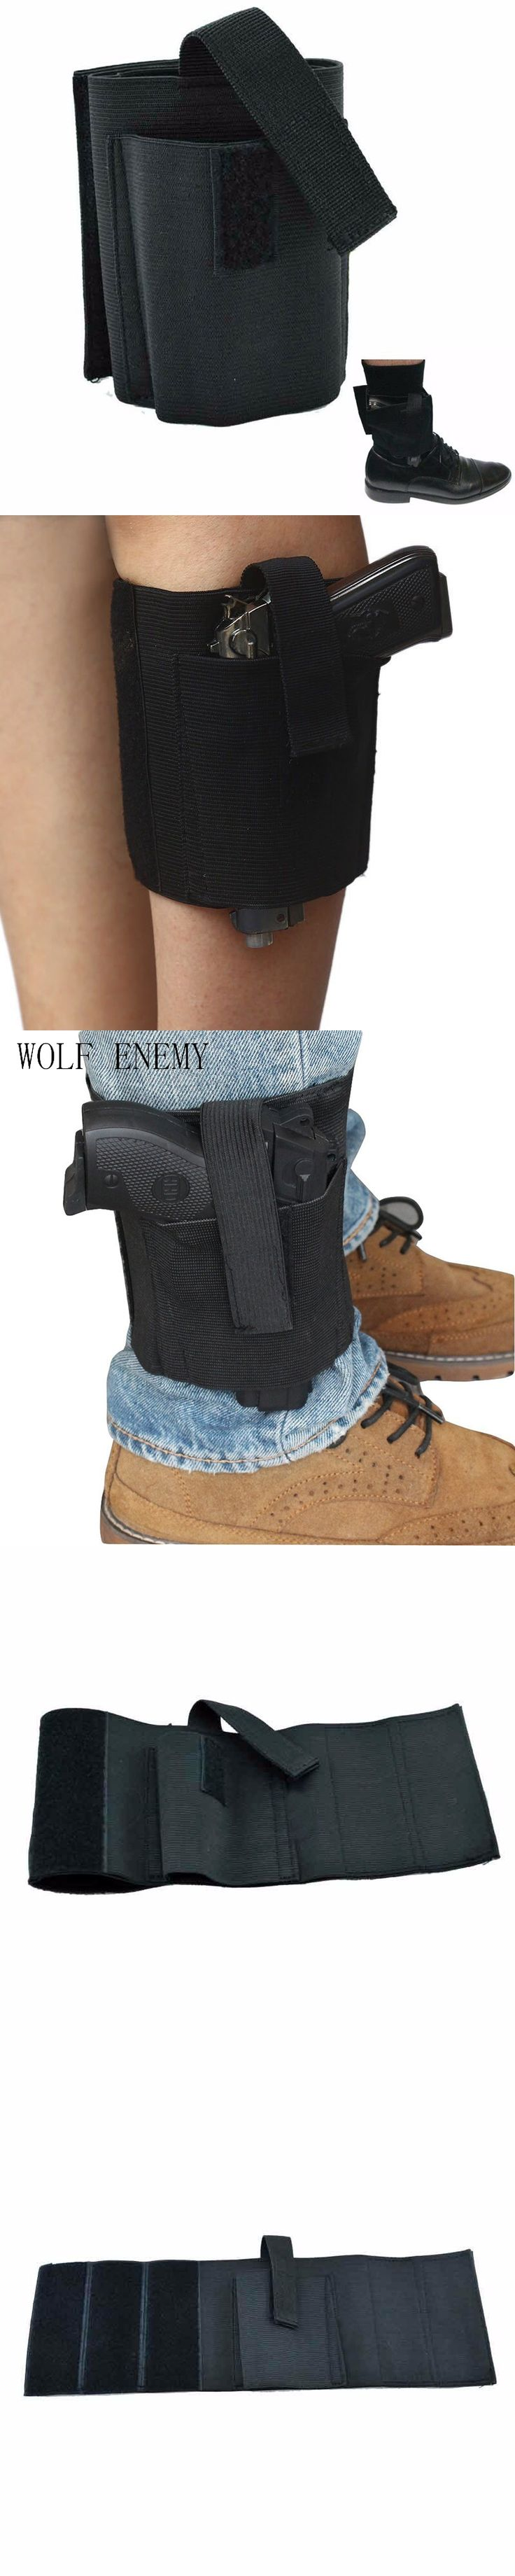 Concealed Universal Black Carry Ankle Leg Pistol Gun Holster LCP LC9 PF9 Small for sig 223 SCCY 9mm